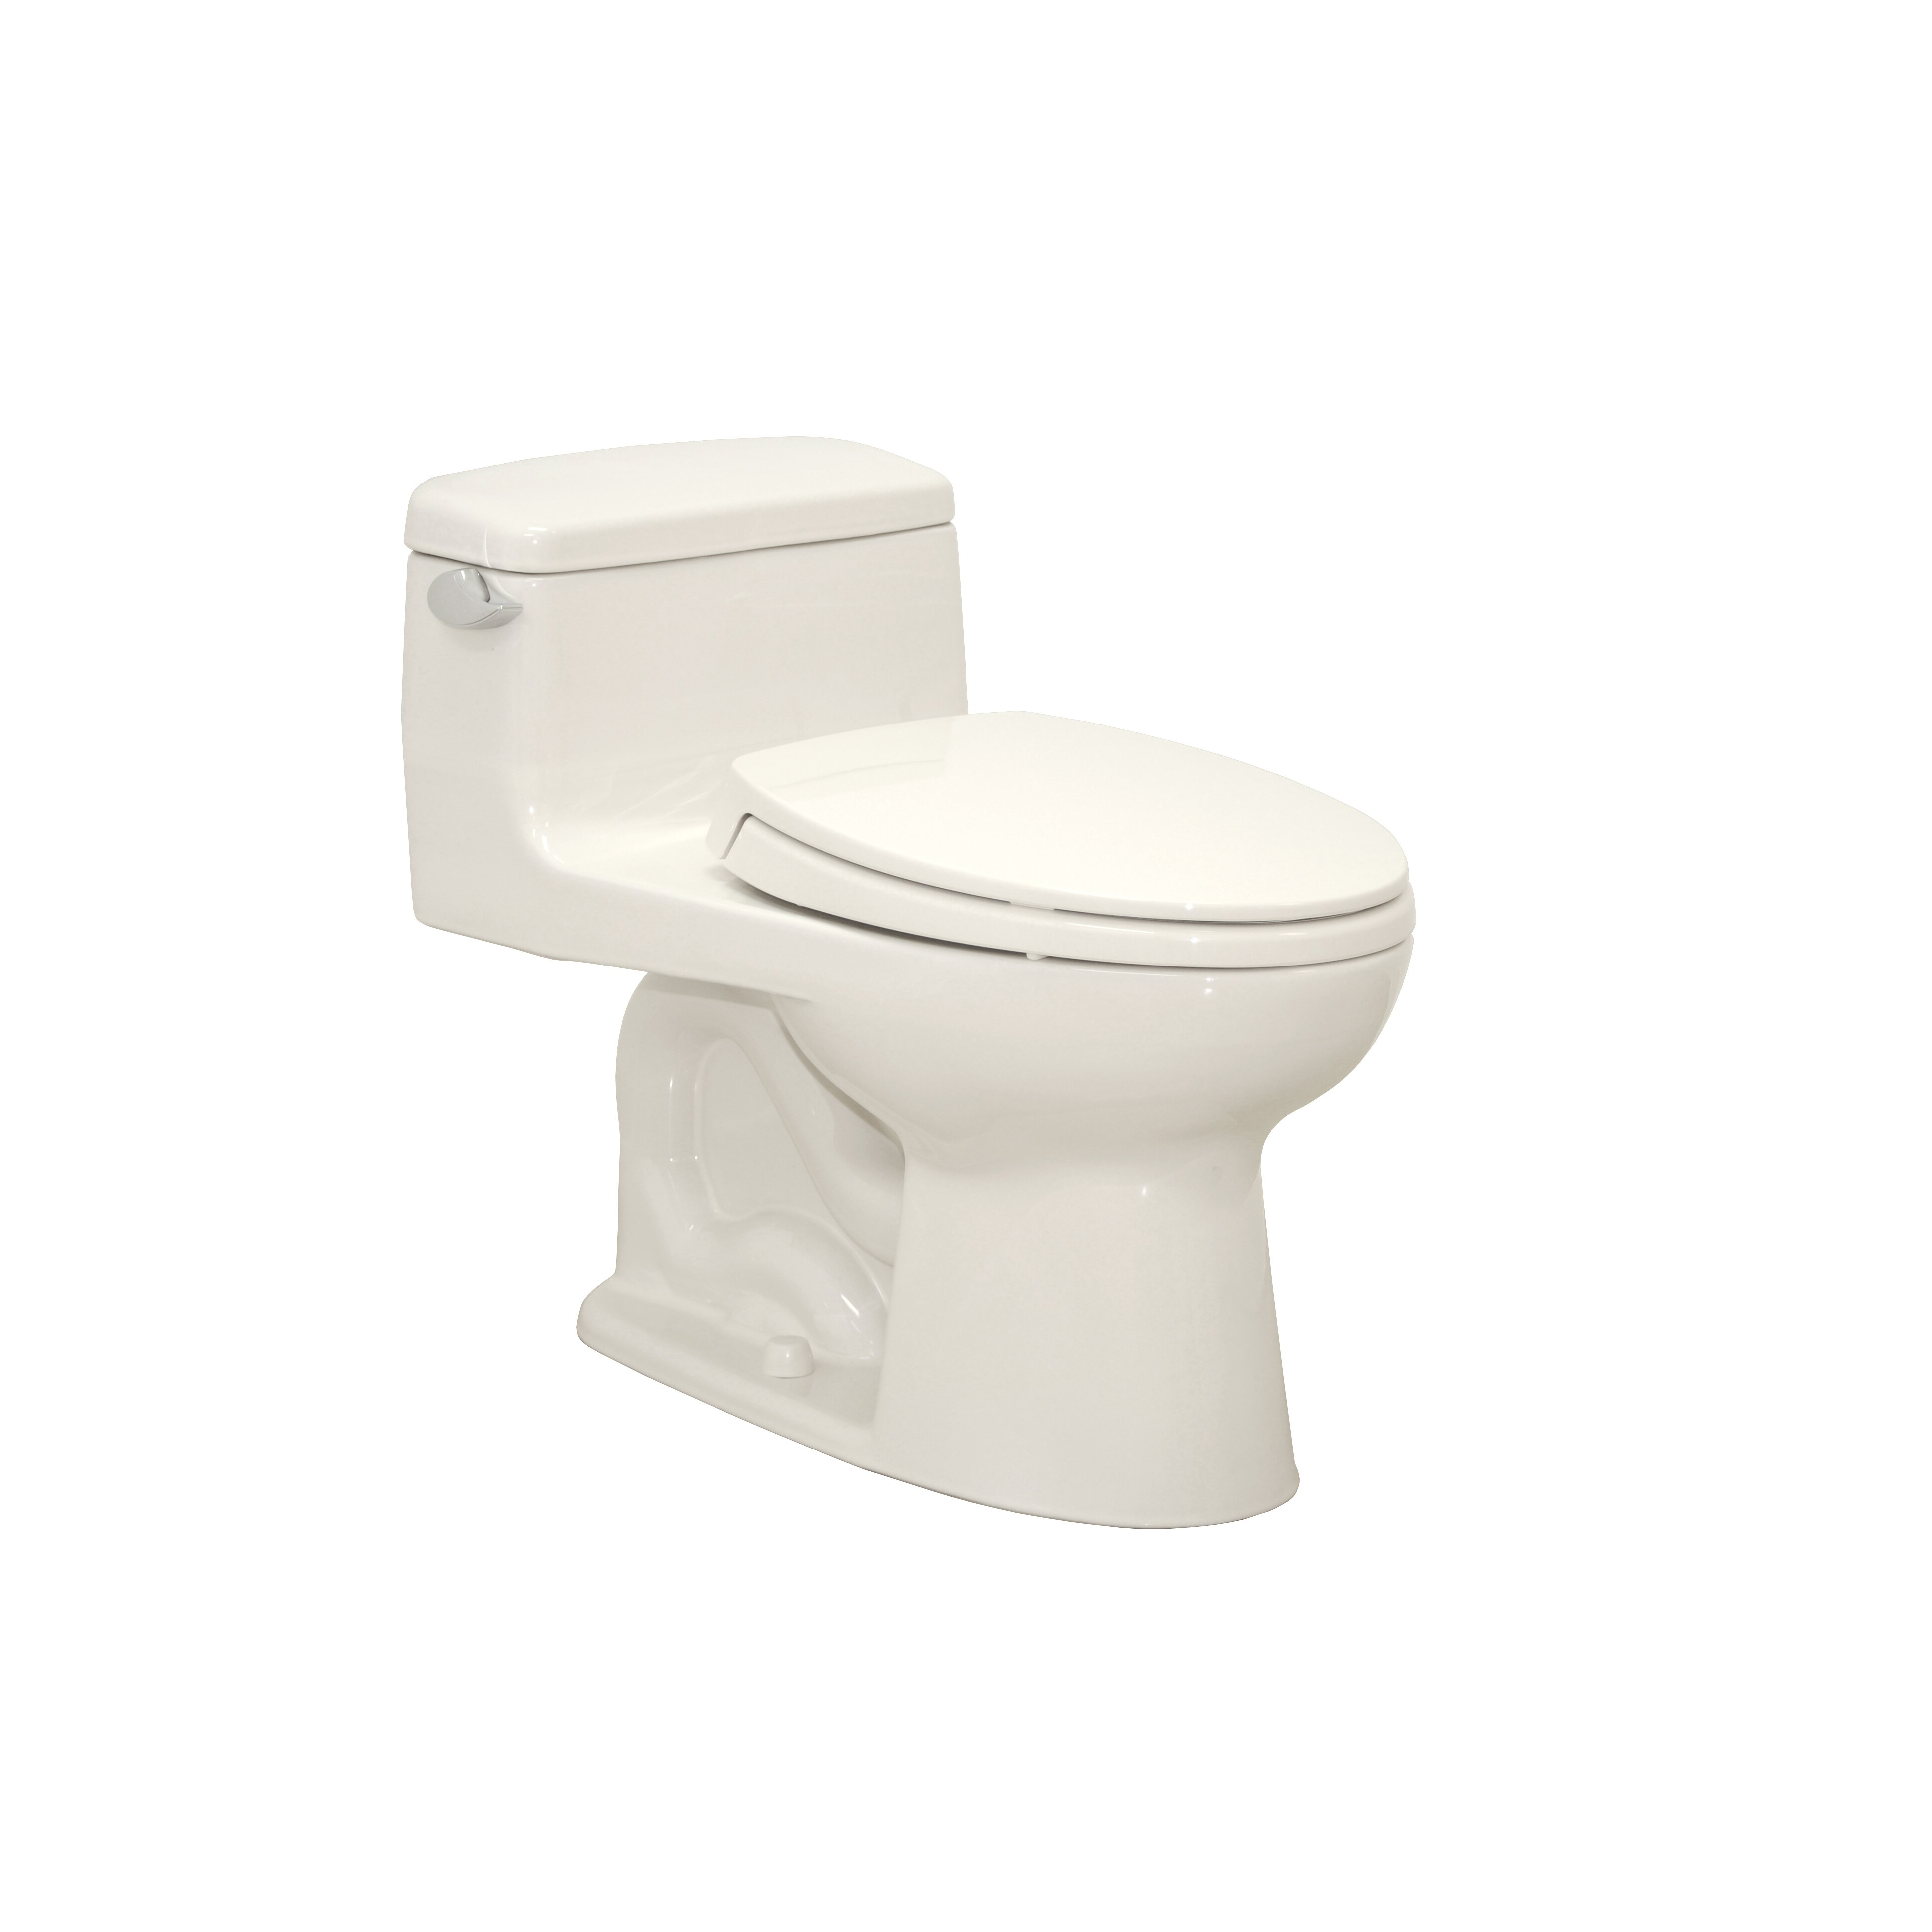 Toto Supreme Eco GPF Elongated 1 Piece Toilet With SoftClose Seat